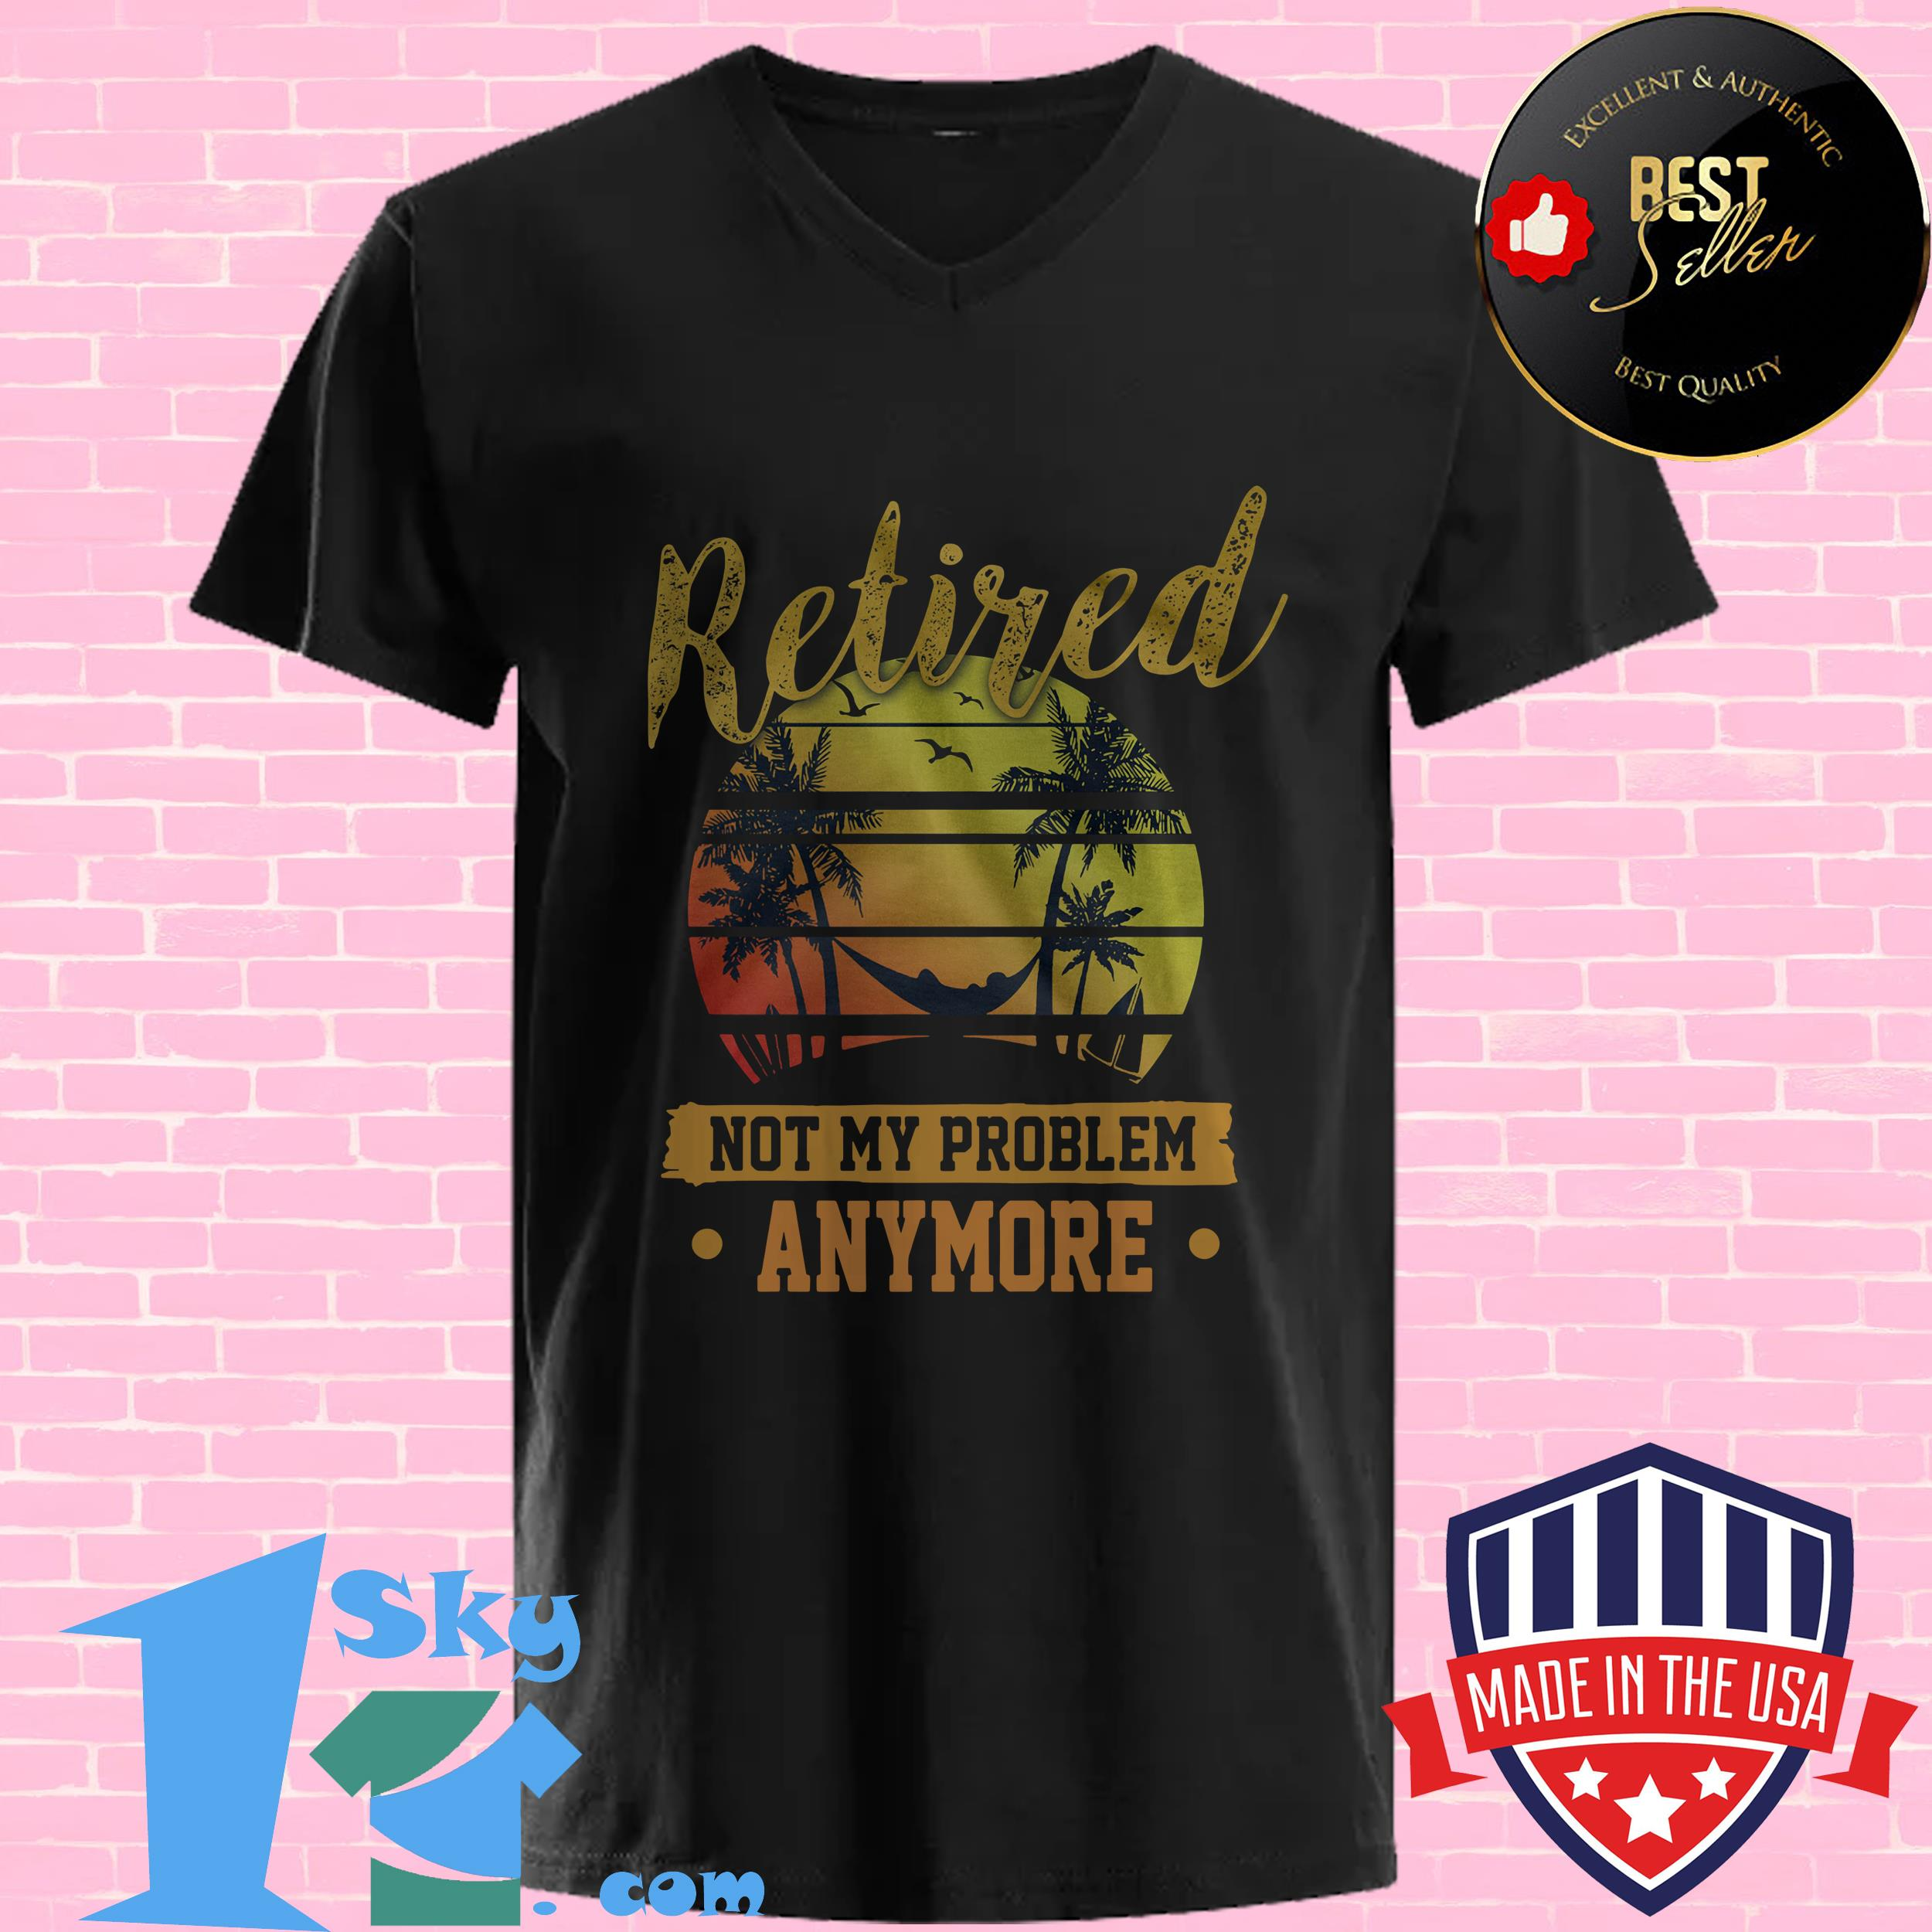 retired not my problem anymore vintage v neck - Retired Not My Problem Anymore Vintage shirt